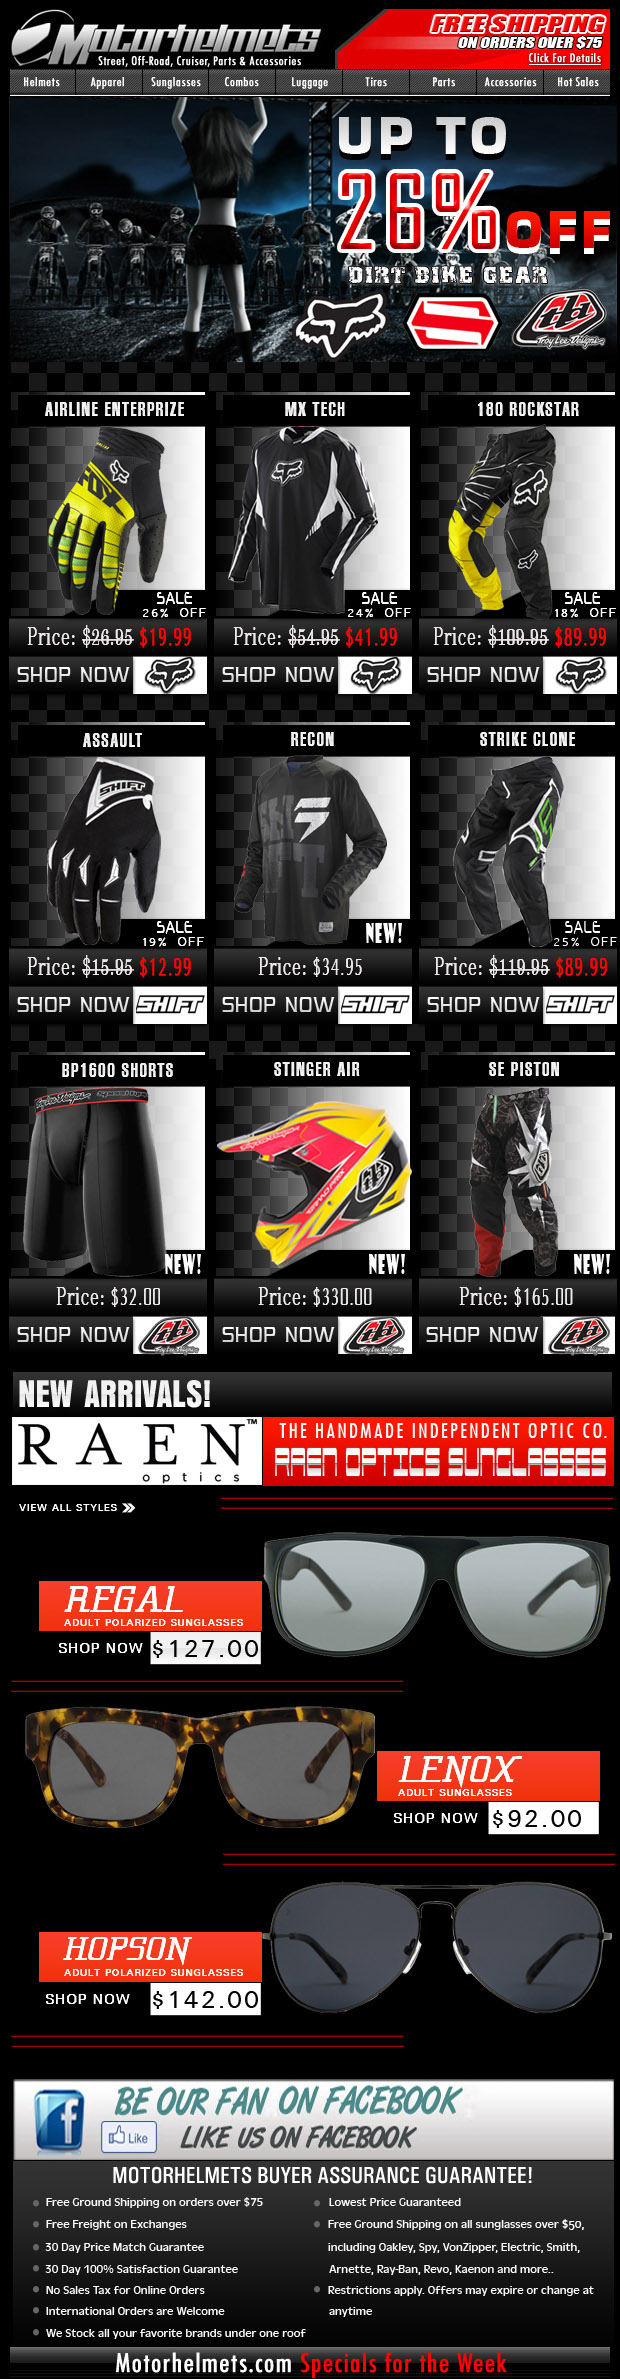 Octo-GEAR-Fest! Up to 26% Off on Fox, Shift, TLD MX Gear! - 10/06/12